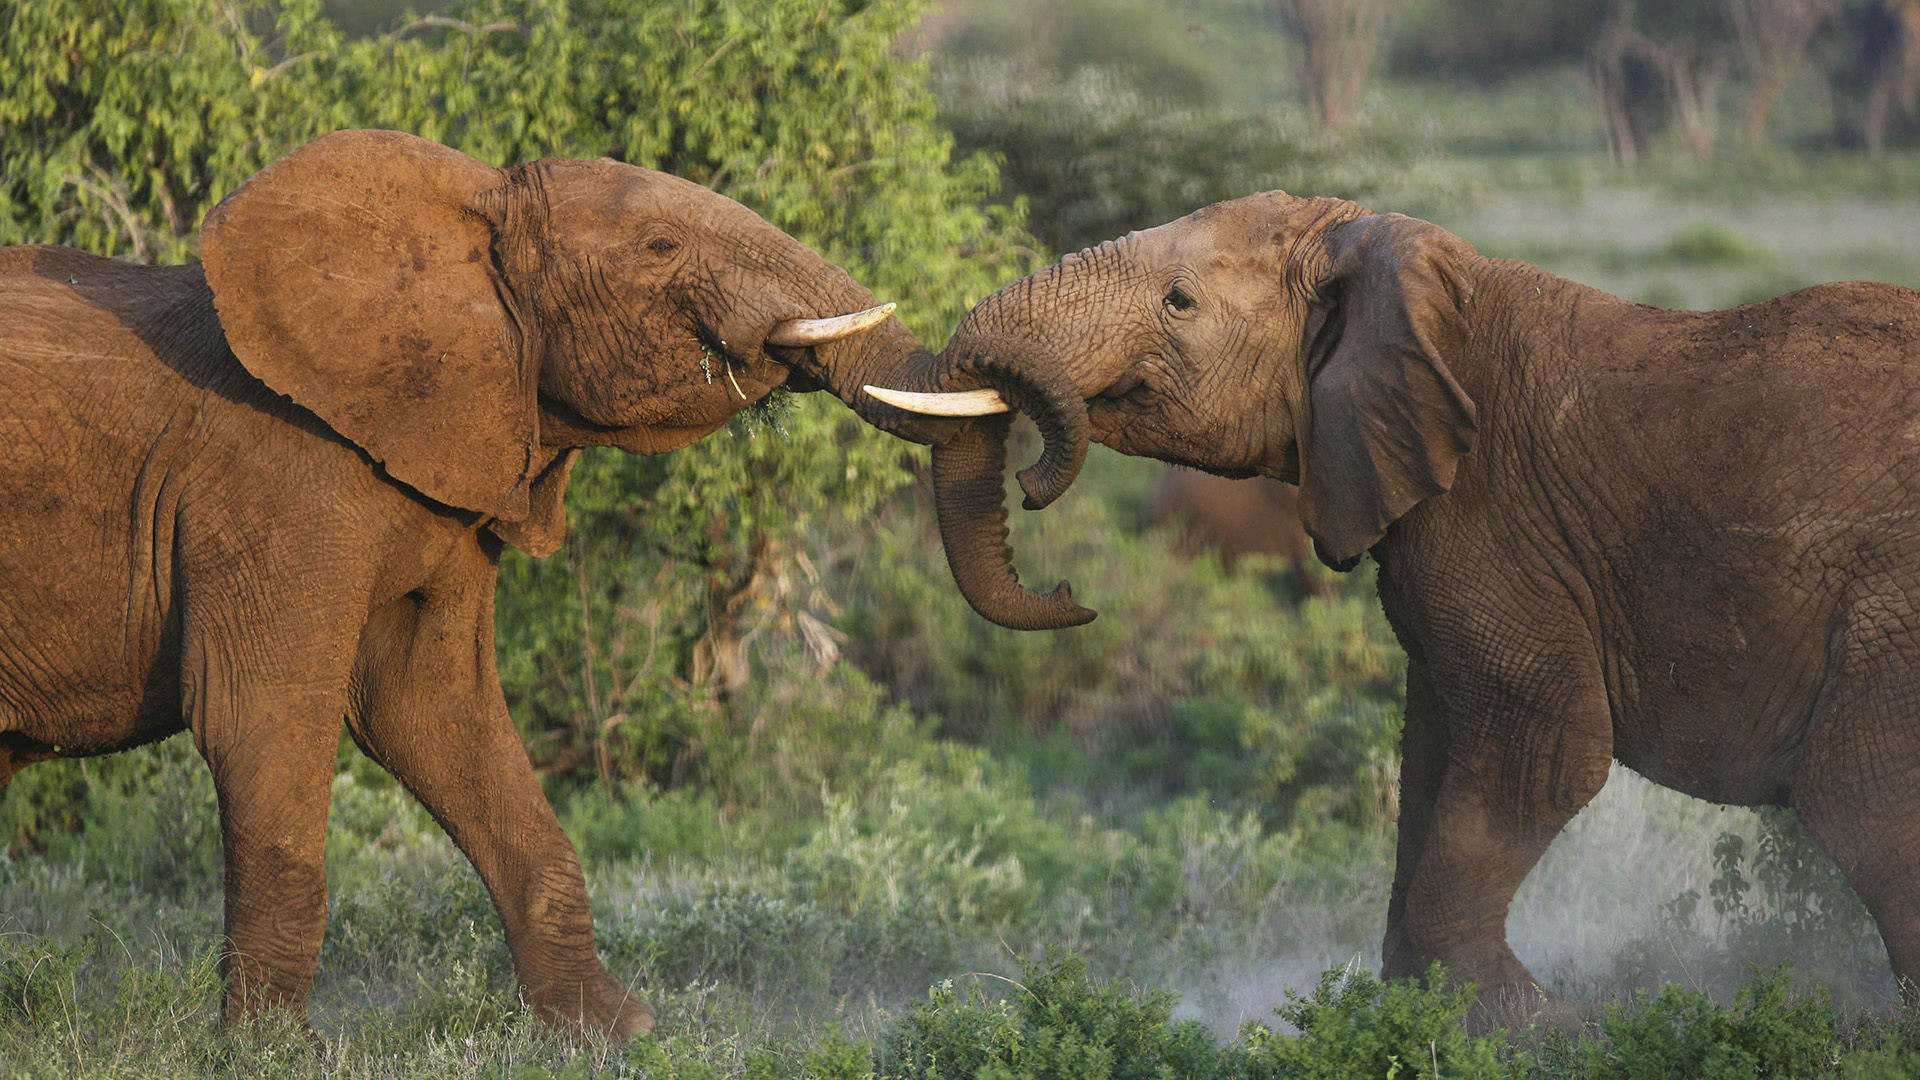 Elephant Dung Soap Is Cleaning Up As A Beauty Treatment